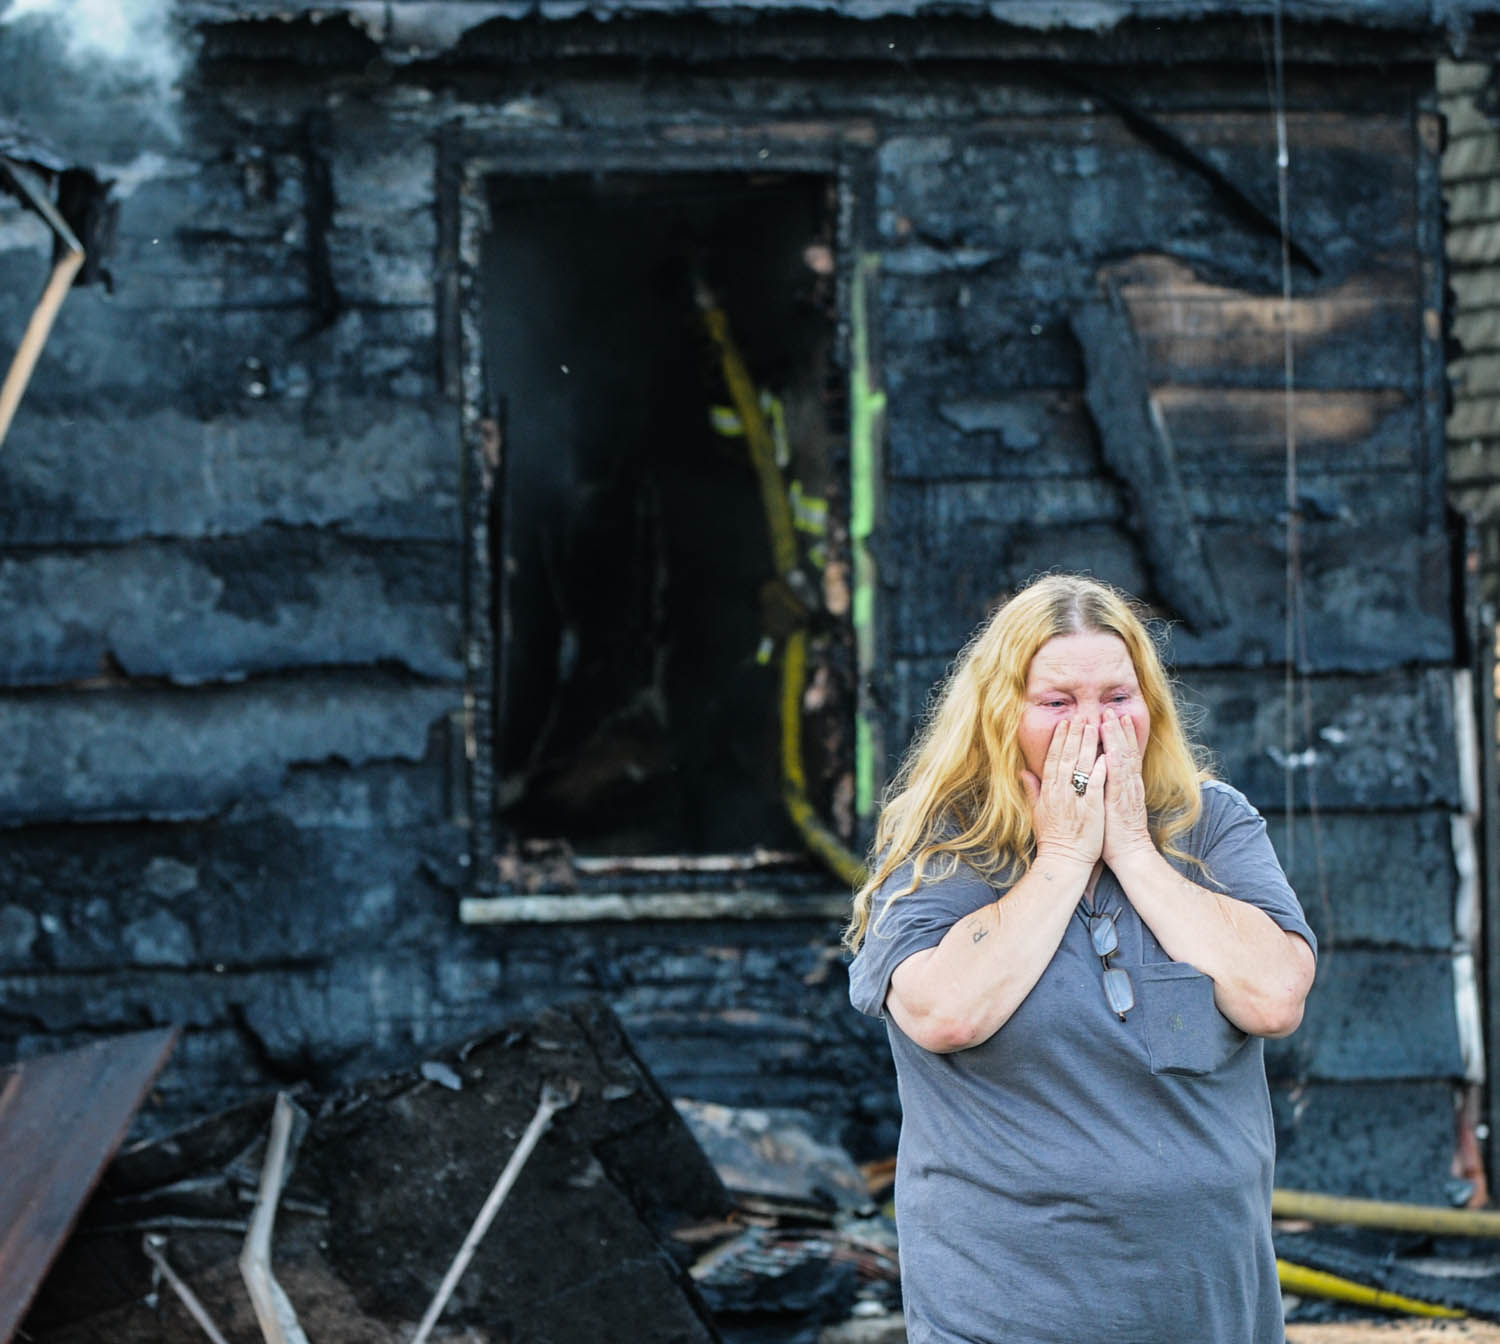 Barb Lucia, of East Moline, reacts to the early-morning fire which destroyed the house she was living in at 1339 17th St., East Moline. Ms. Lucia was not at home when the fire broke out about 6:30 this morning. The three people asleep inside the home escaped uninjured. (Todd Mizener - Dispatch/Argus)